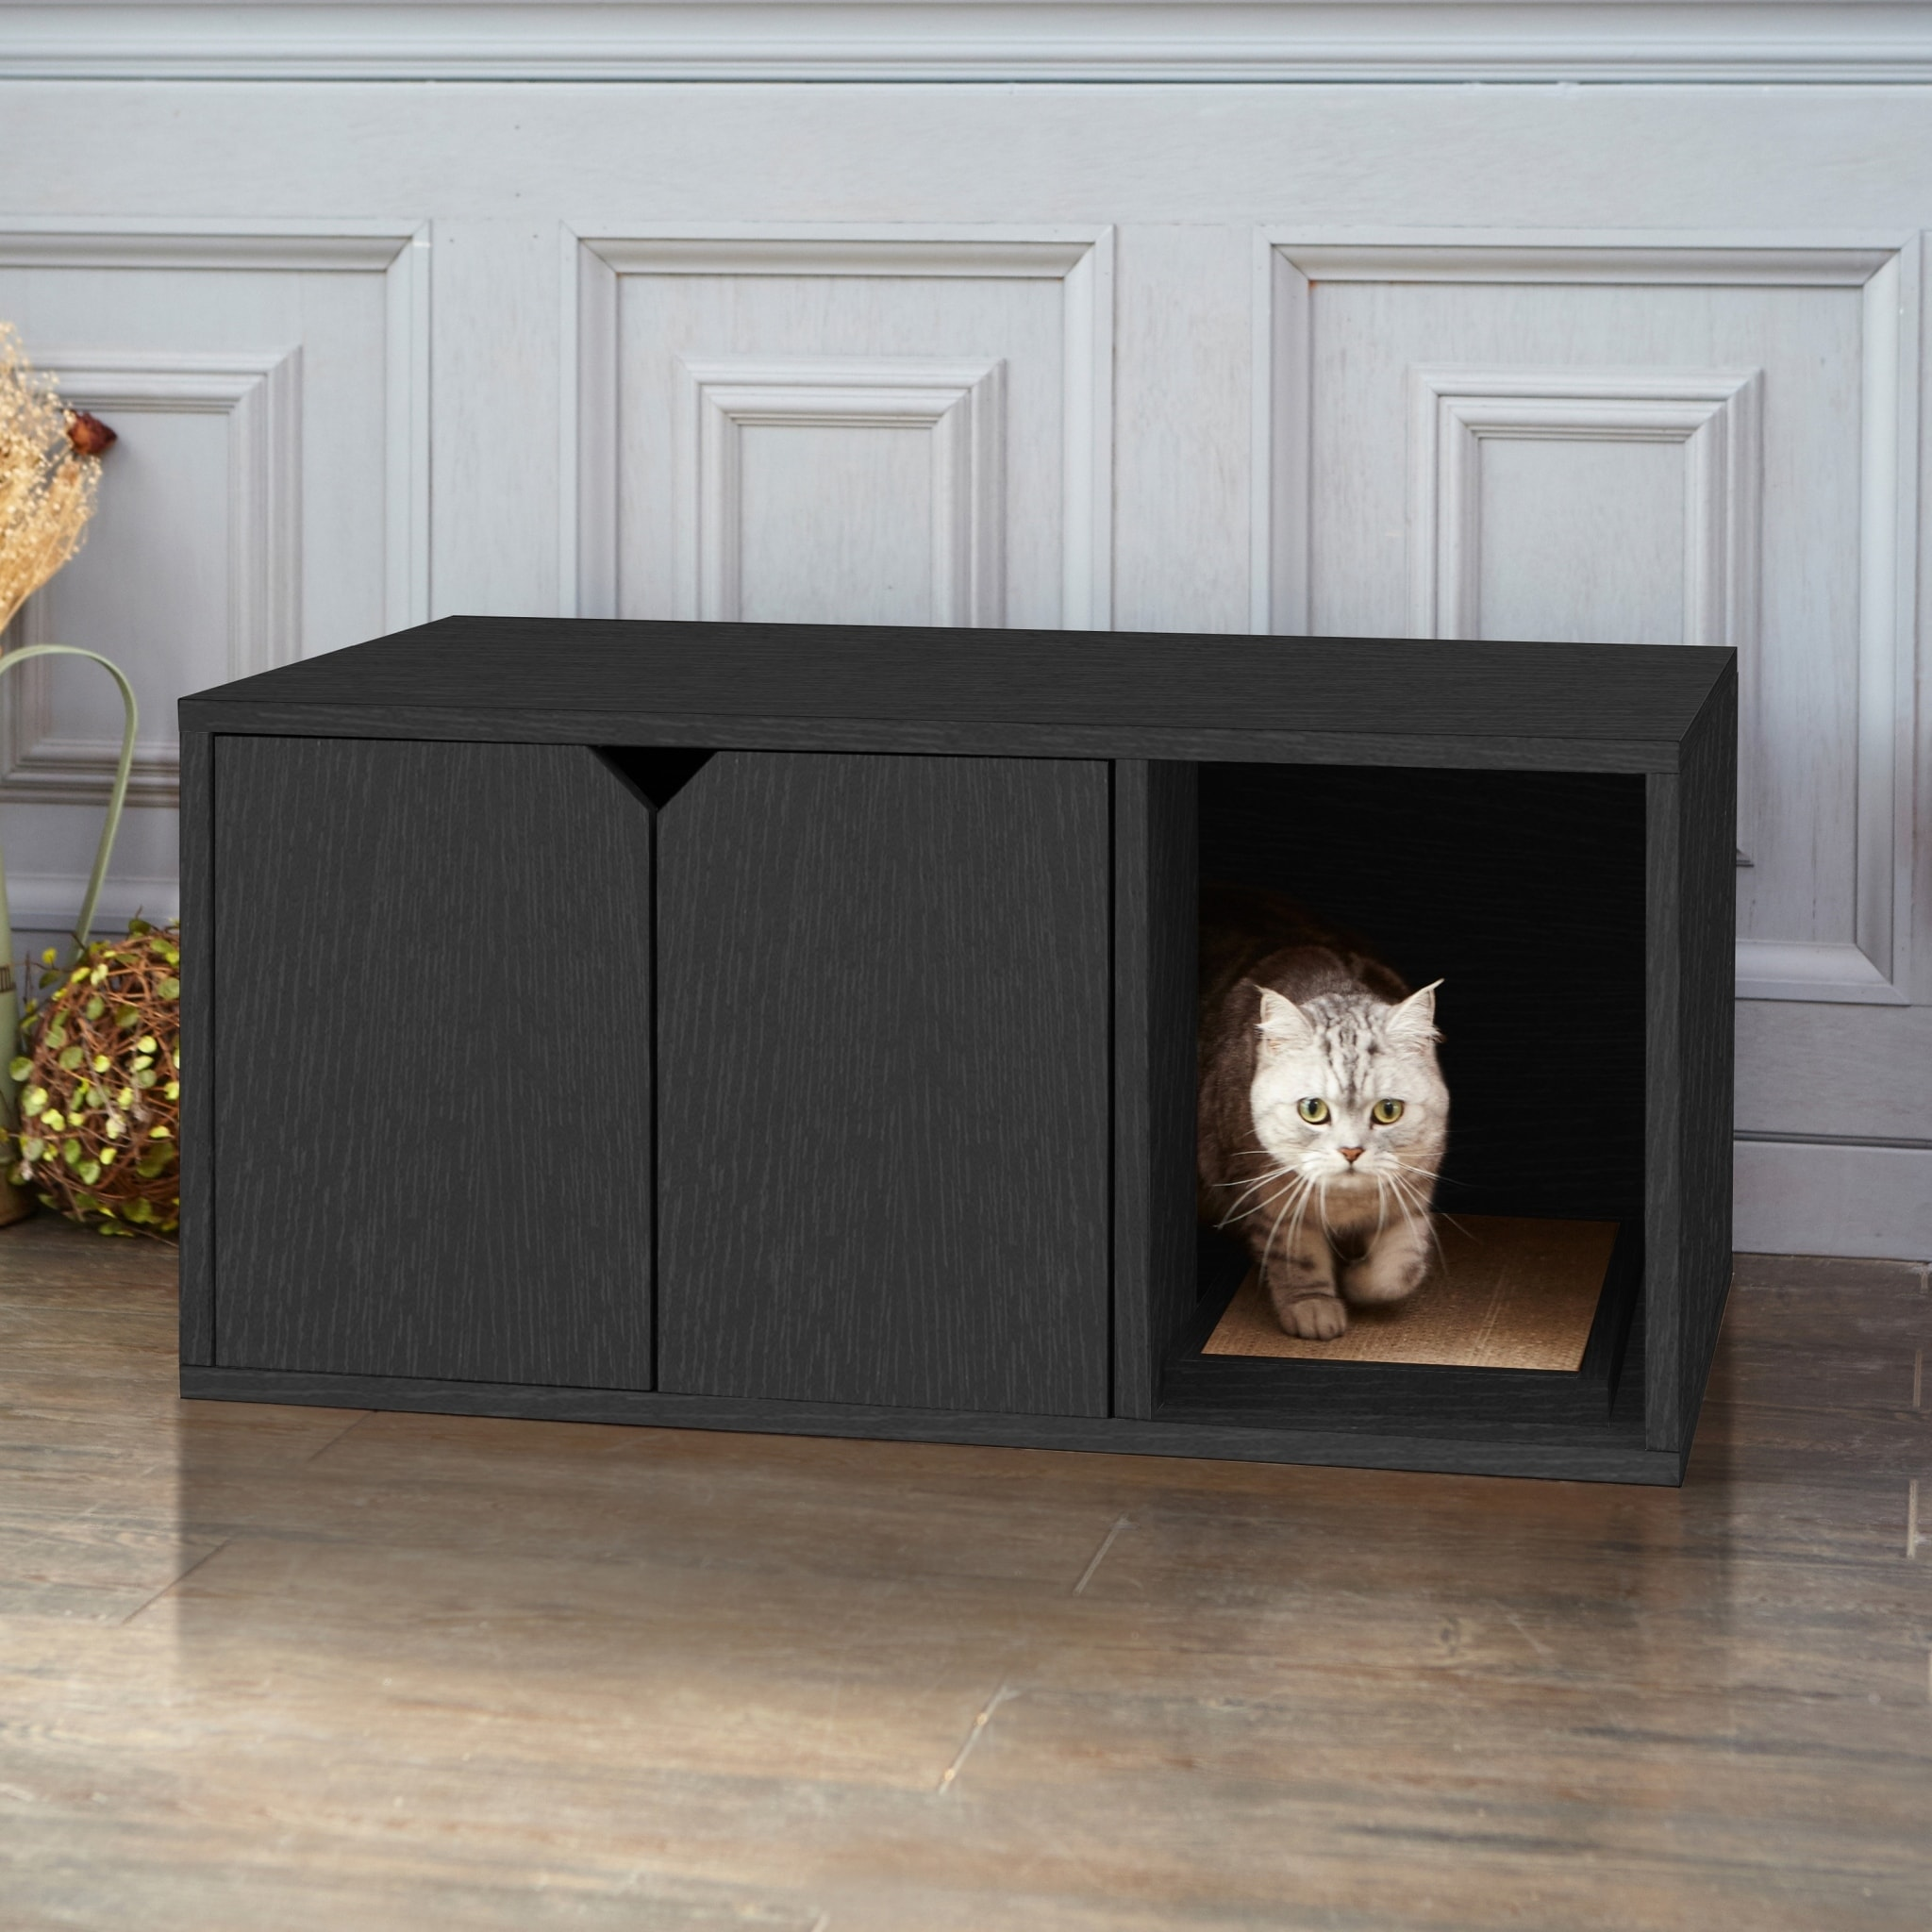 Way Basics Black Eco Friendly Cat Litter Box Enclosure Free Shipping Today 17663513